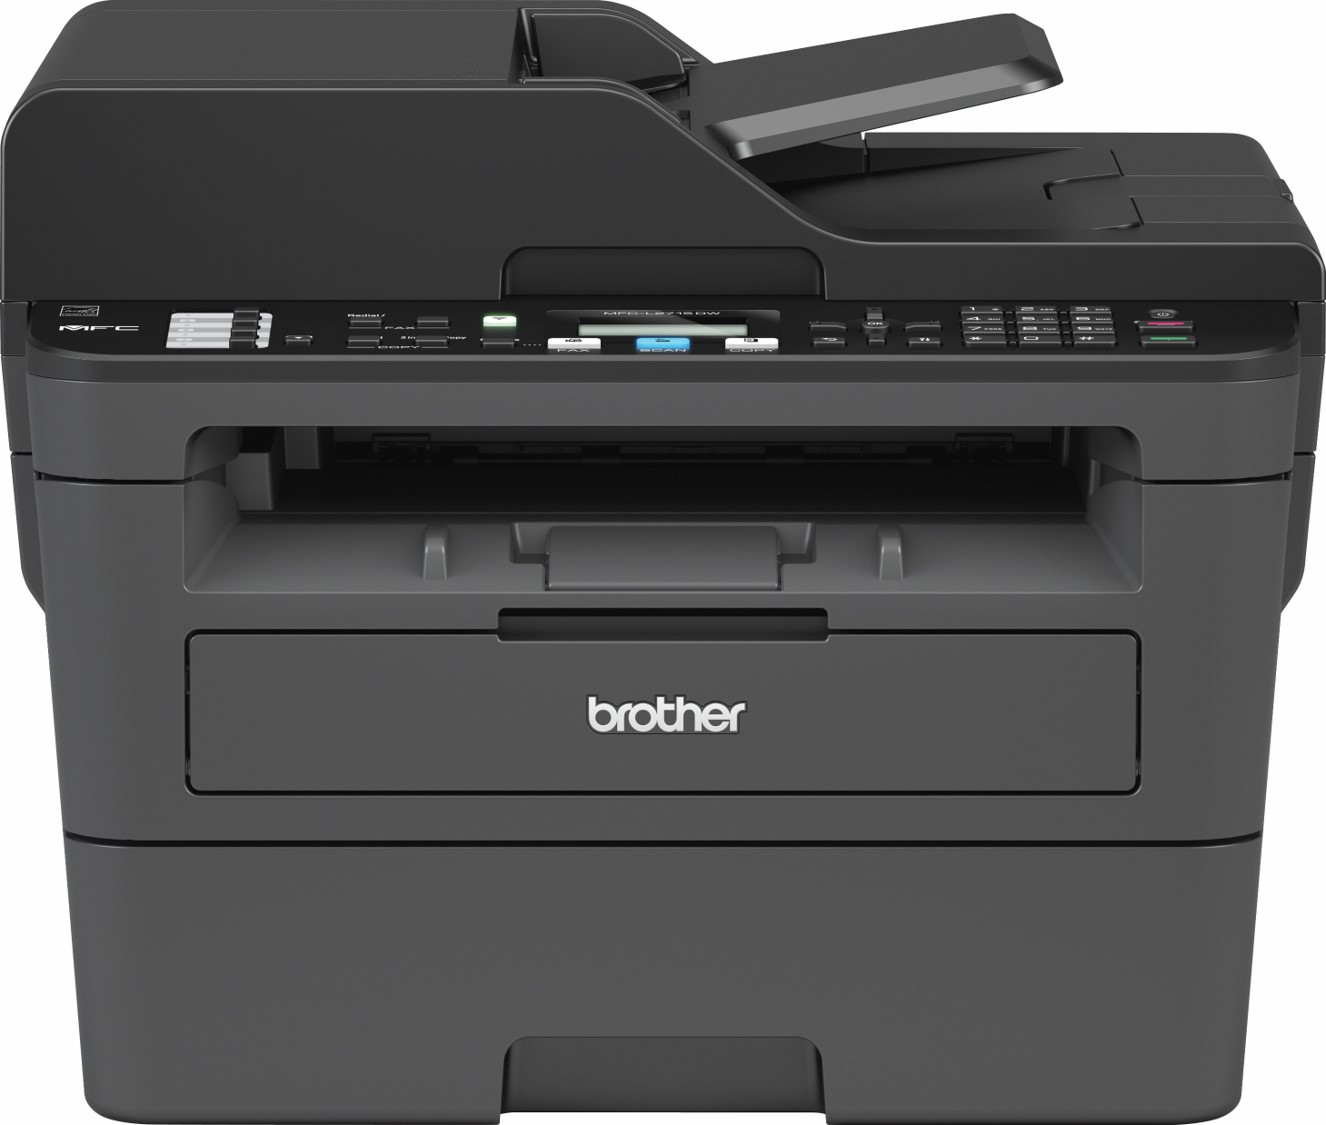 Brother MFCL2713DW Printer